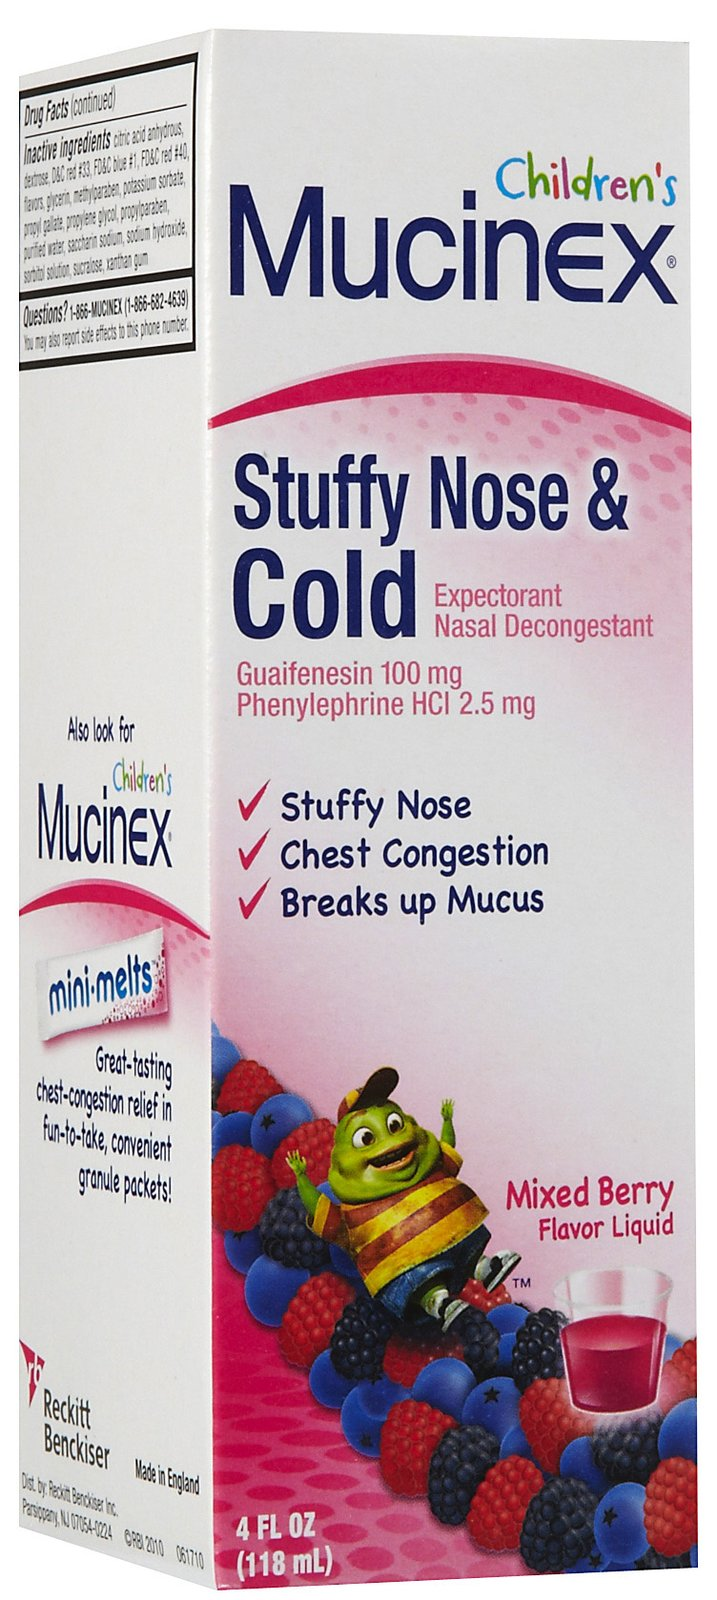 Possible Free Childrens Mucinex from Smiley360